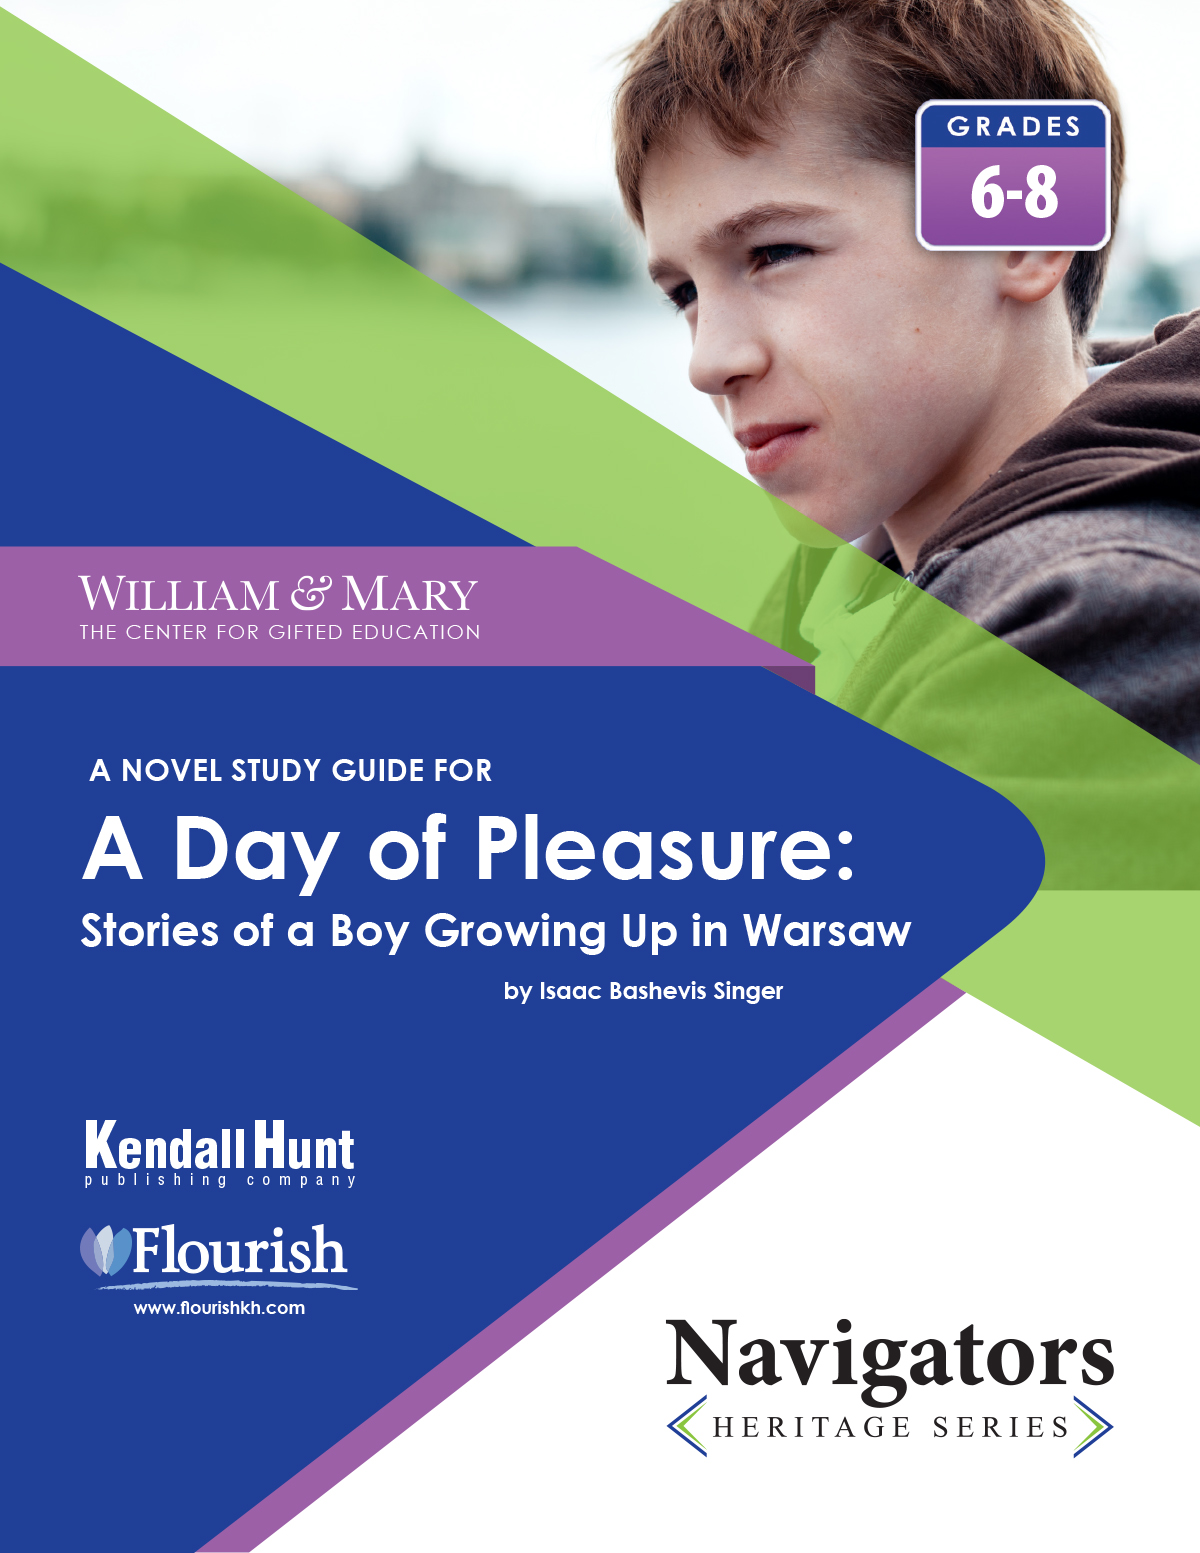 William & Mary Navigator A Day of Pleasure